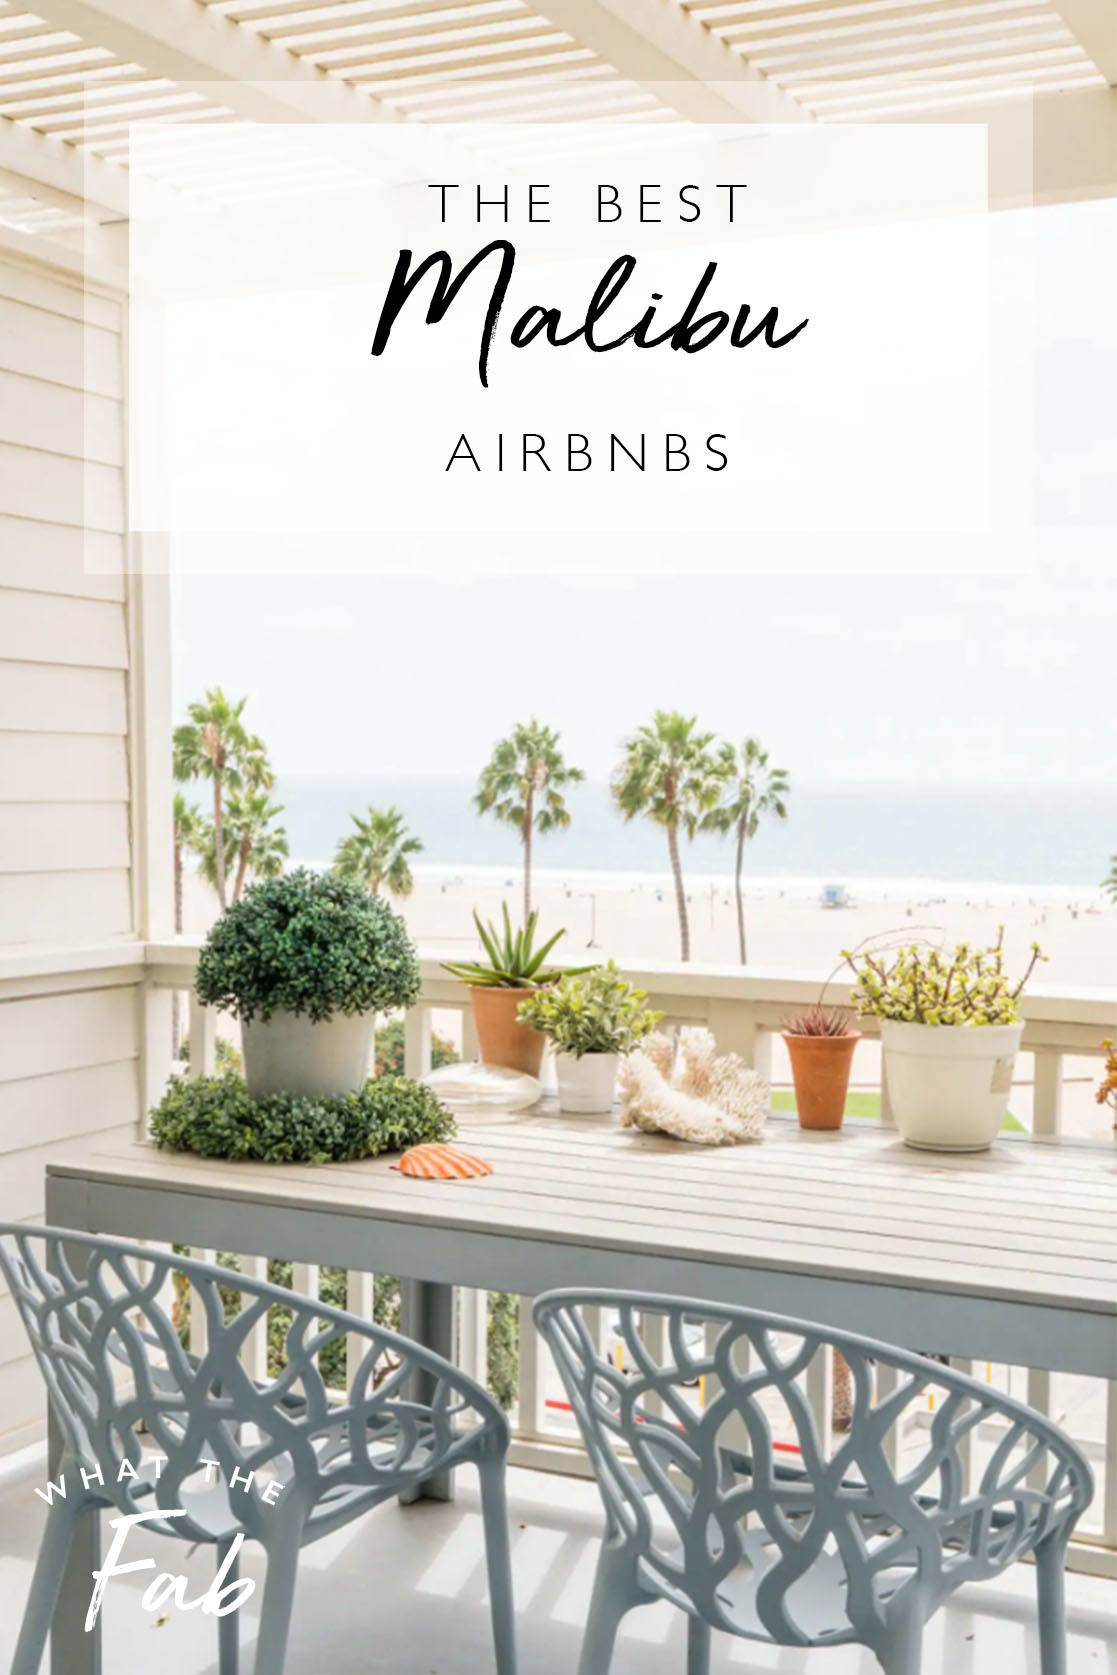 Airbnb Malibu, by Travel Blogger What The Fab